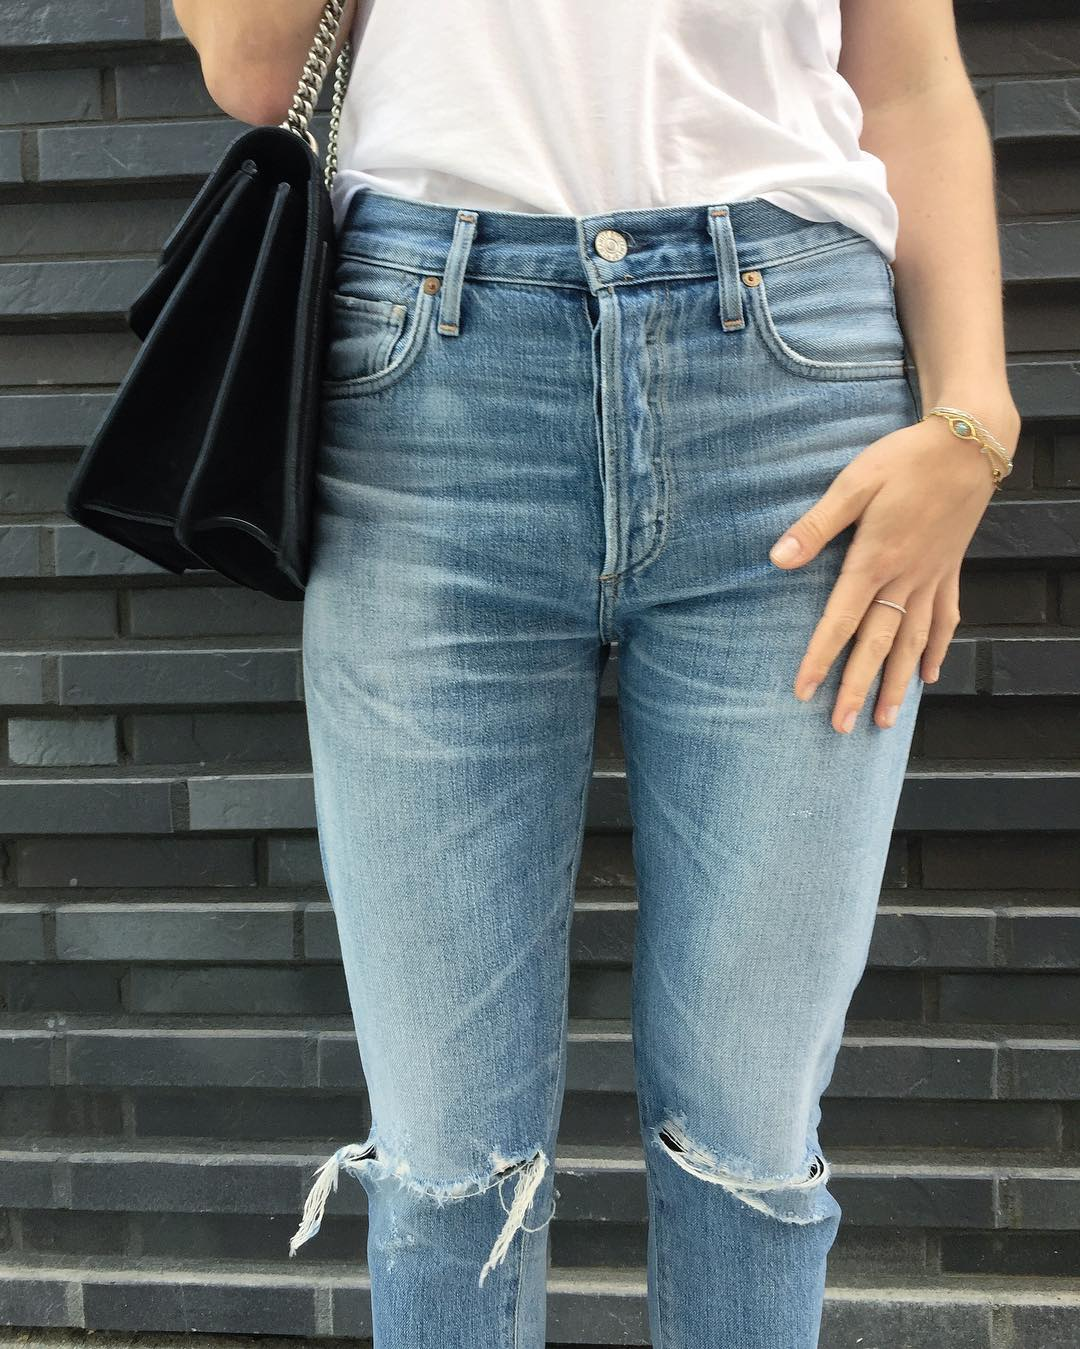 These citizensofhumanity jeans come very close to the perfect pair!hellip